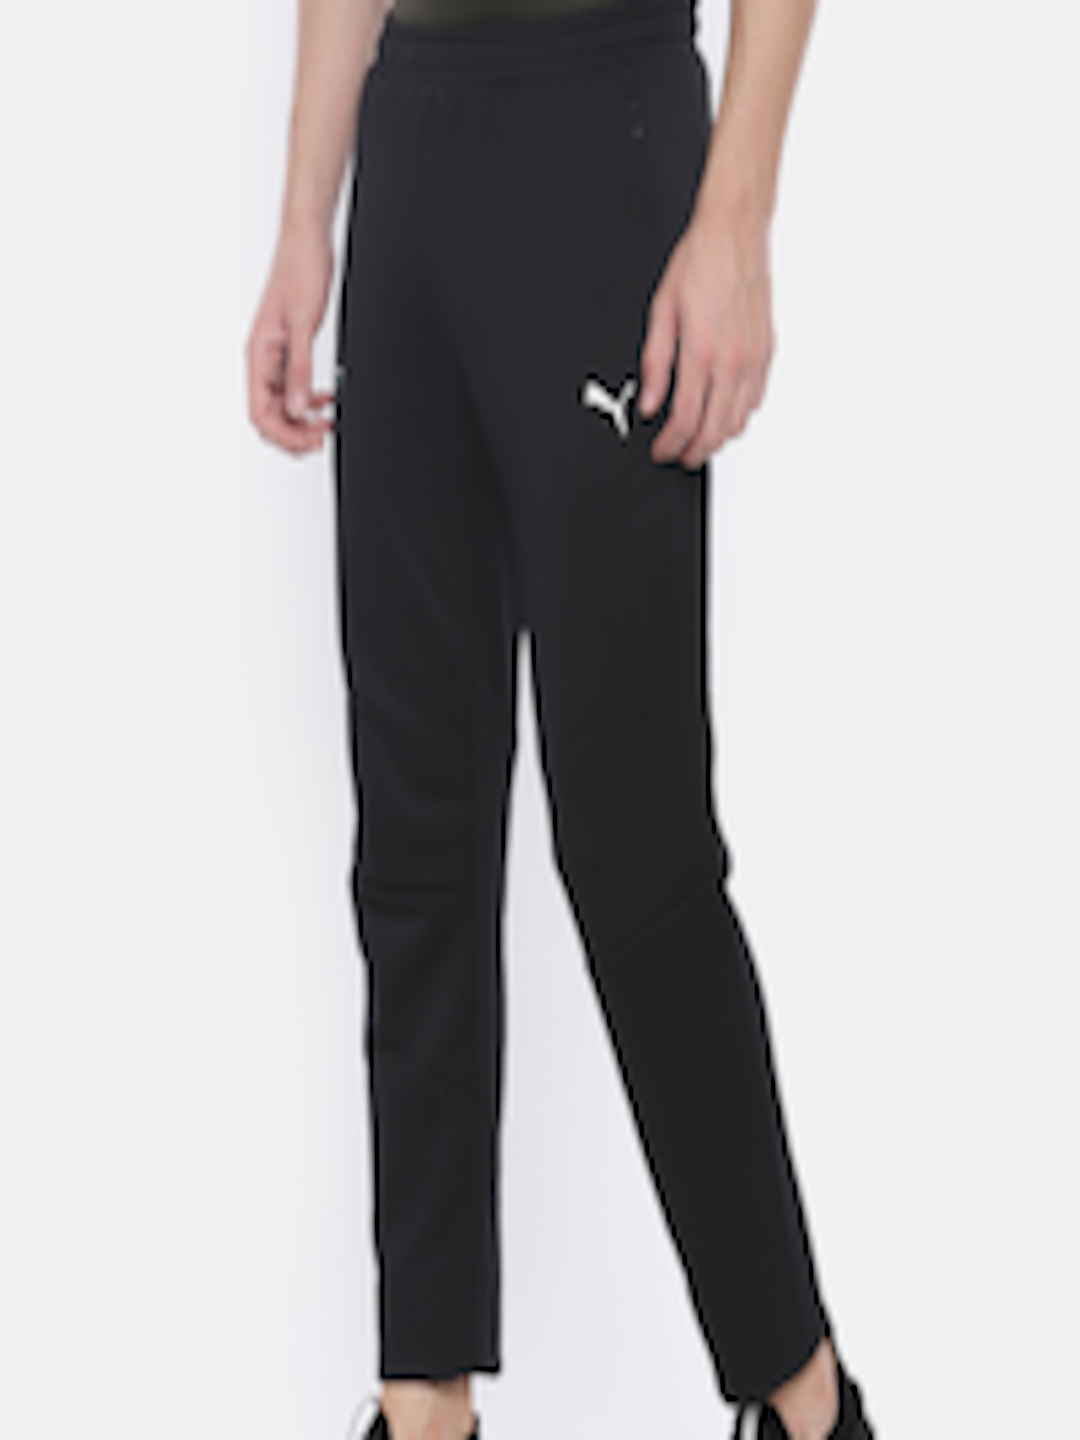 60a4ef1a6ee4 Buy Puma Men Black MAPM T7 Track Pants - Track Pants for Men 7143768 ...